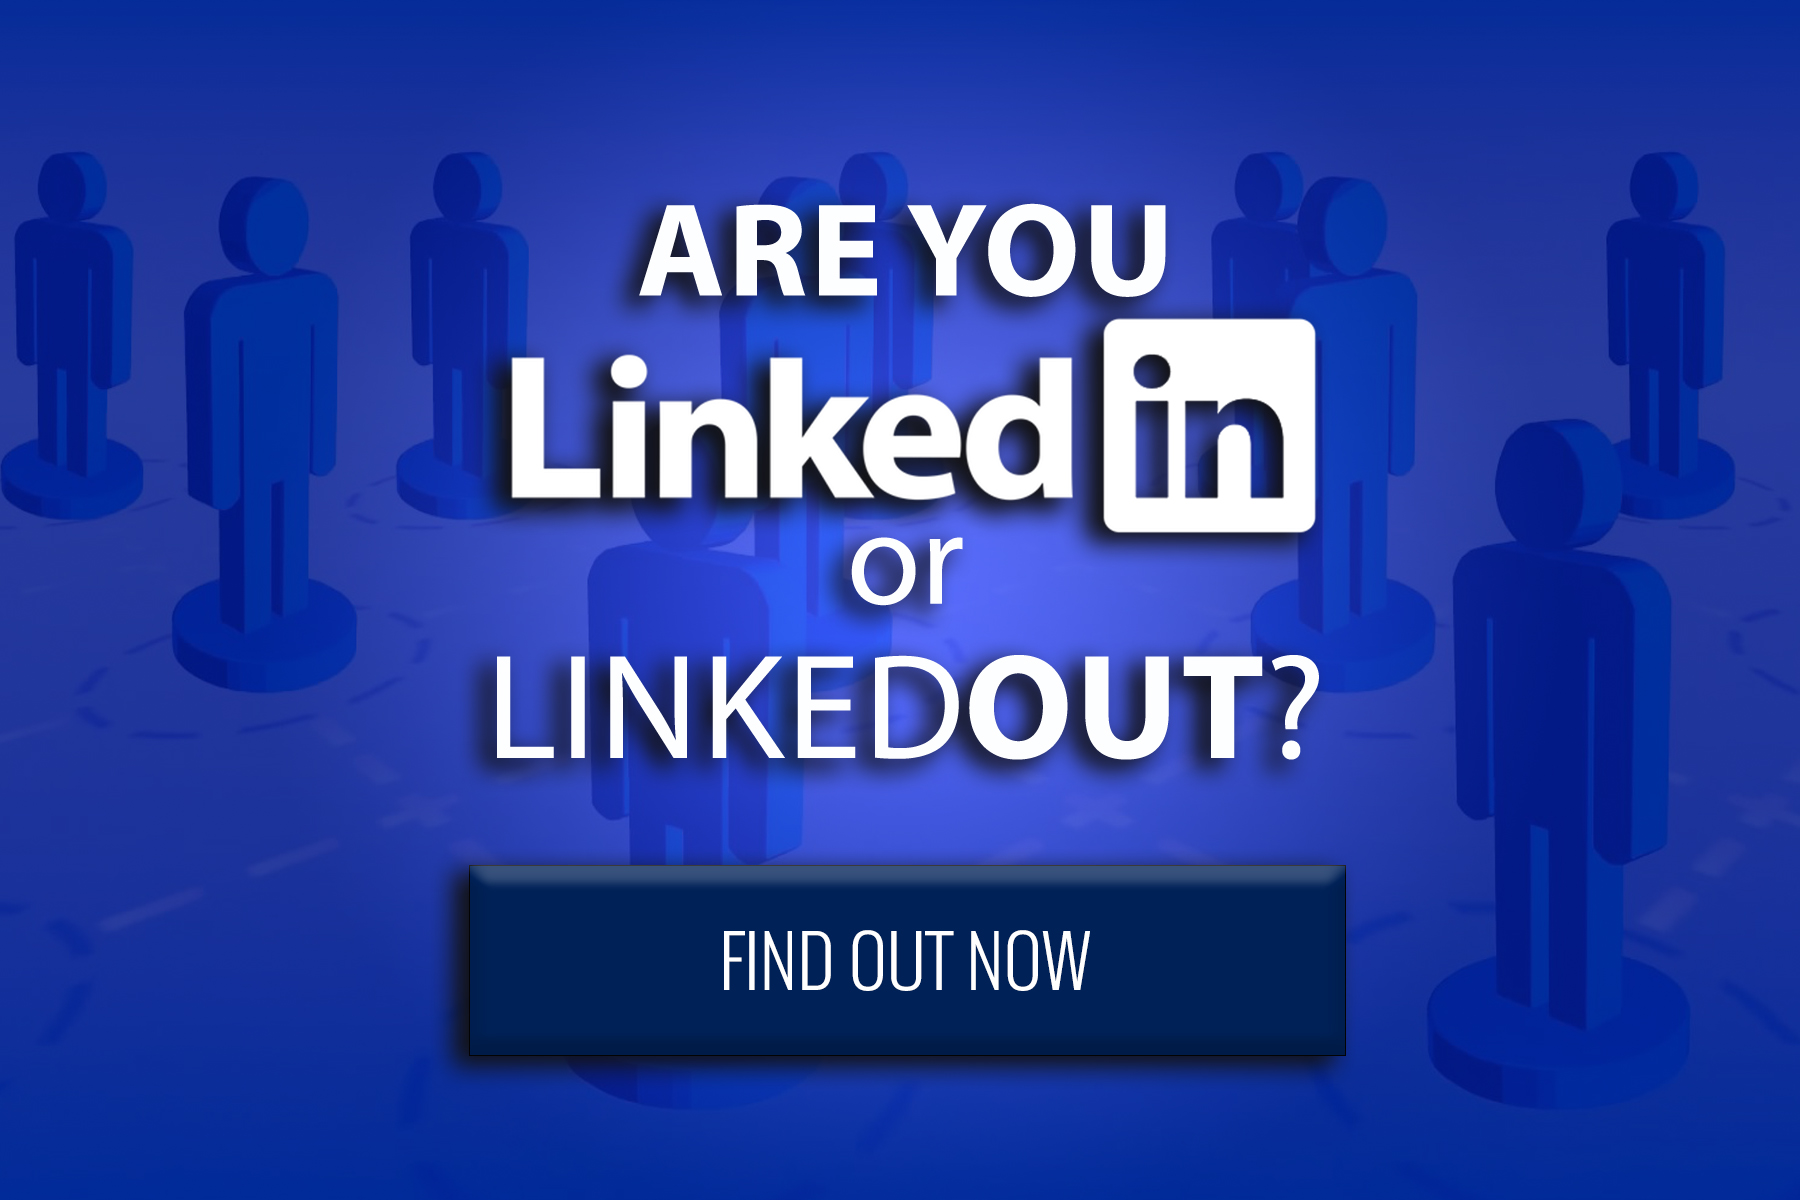 Are you LinkedIn or LinkedOut?